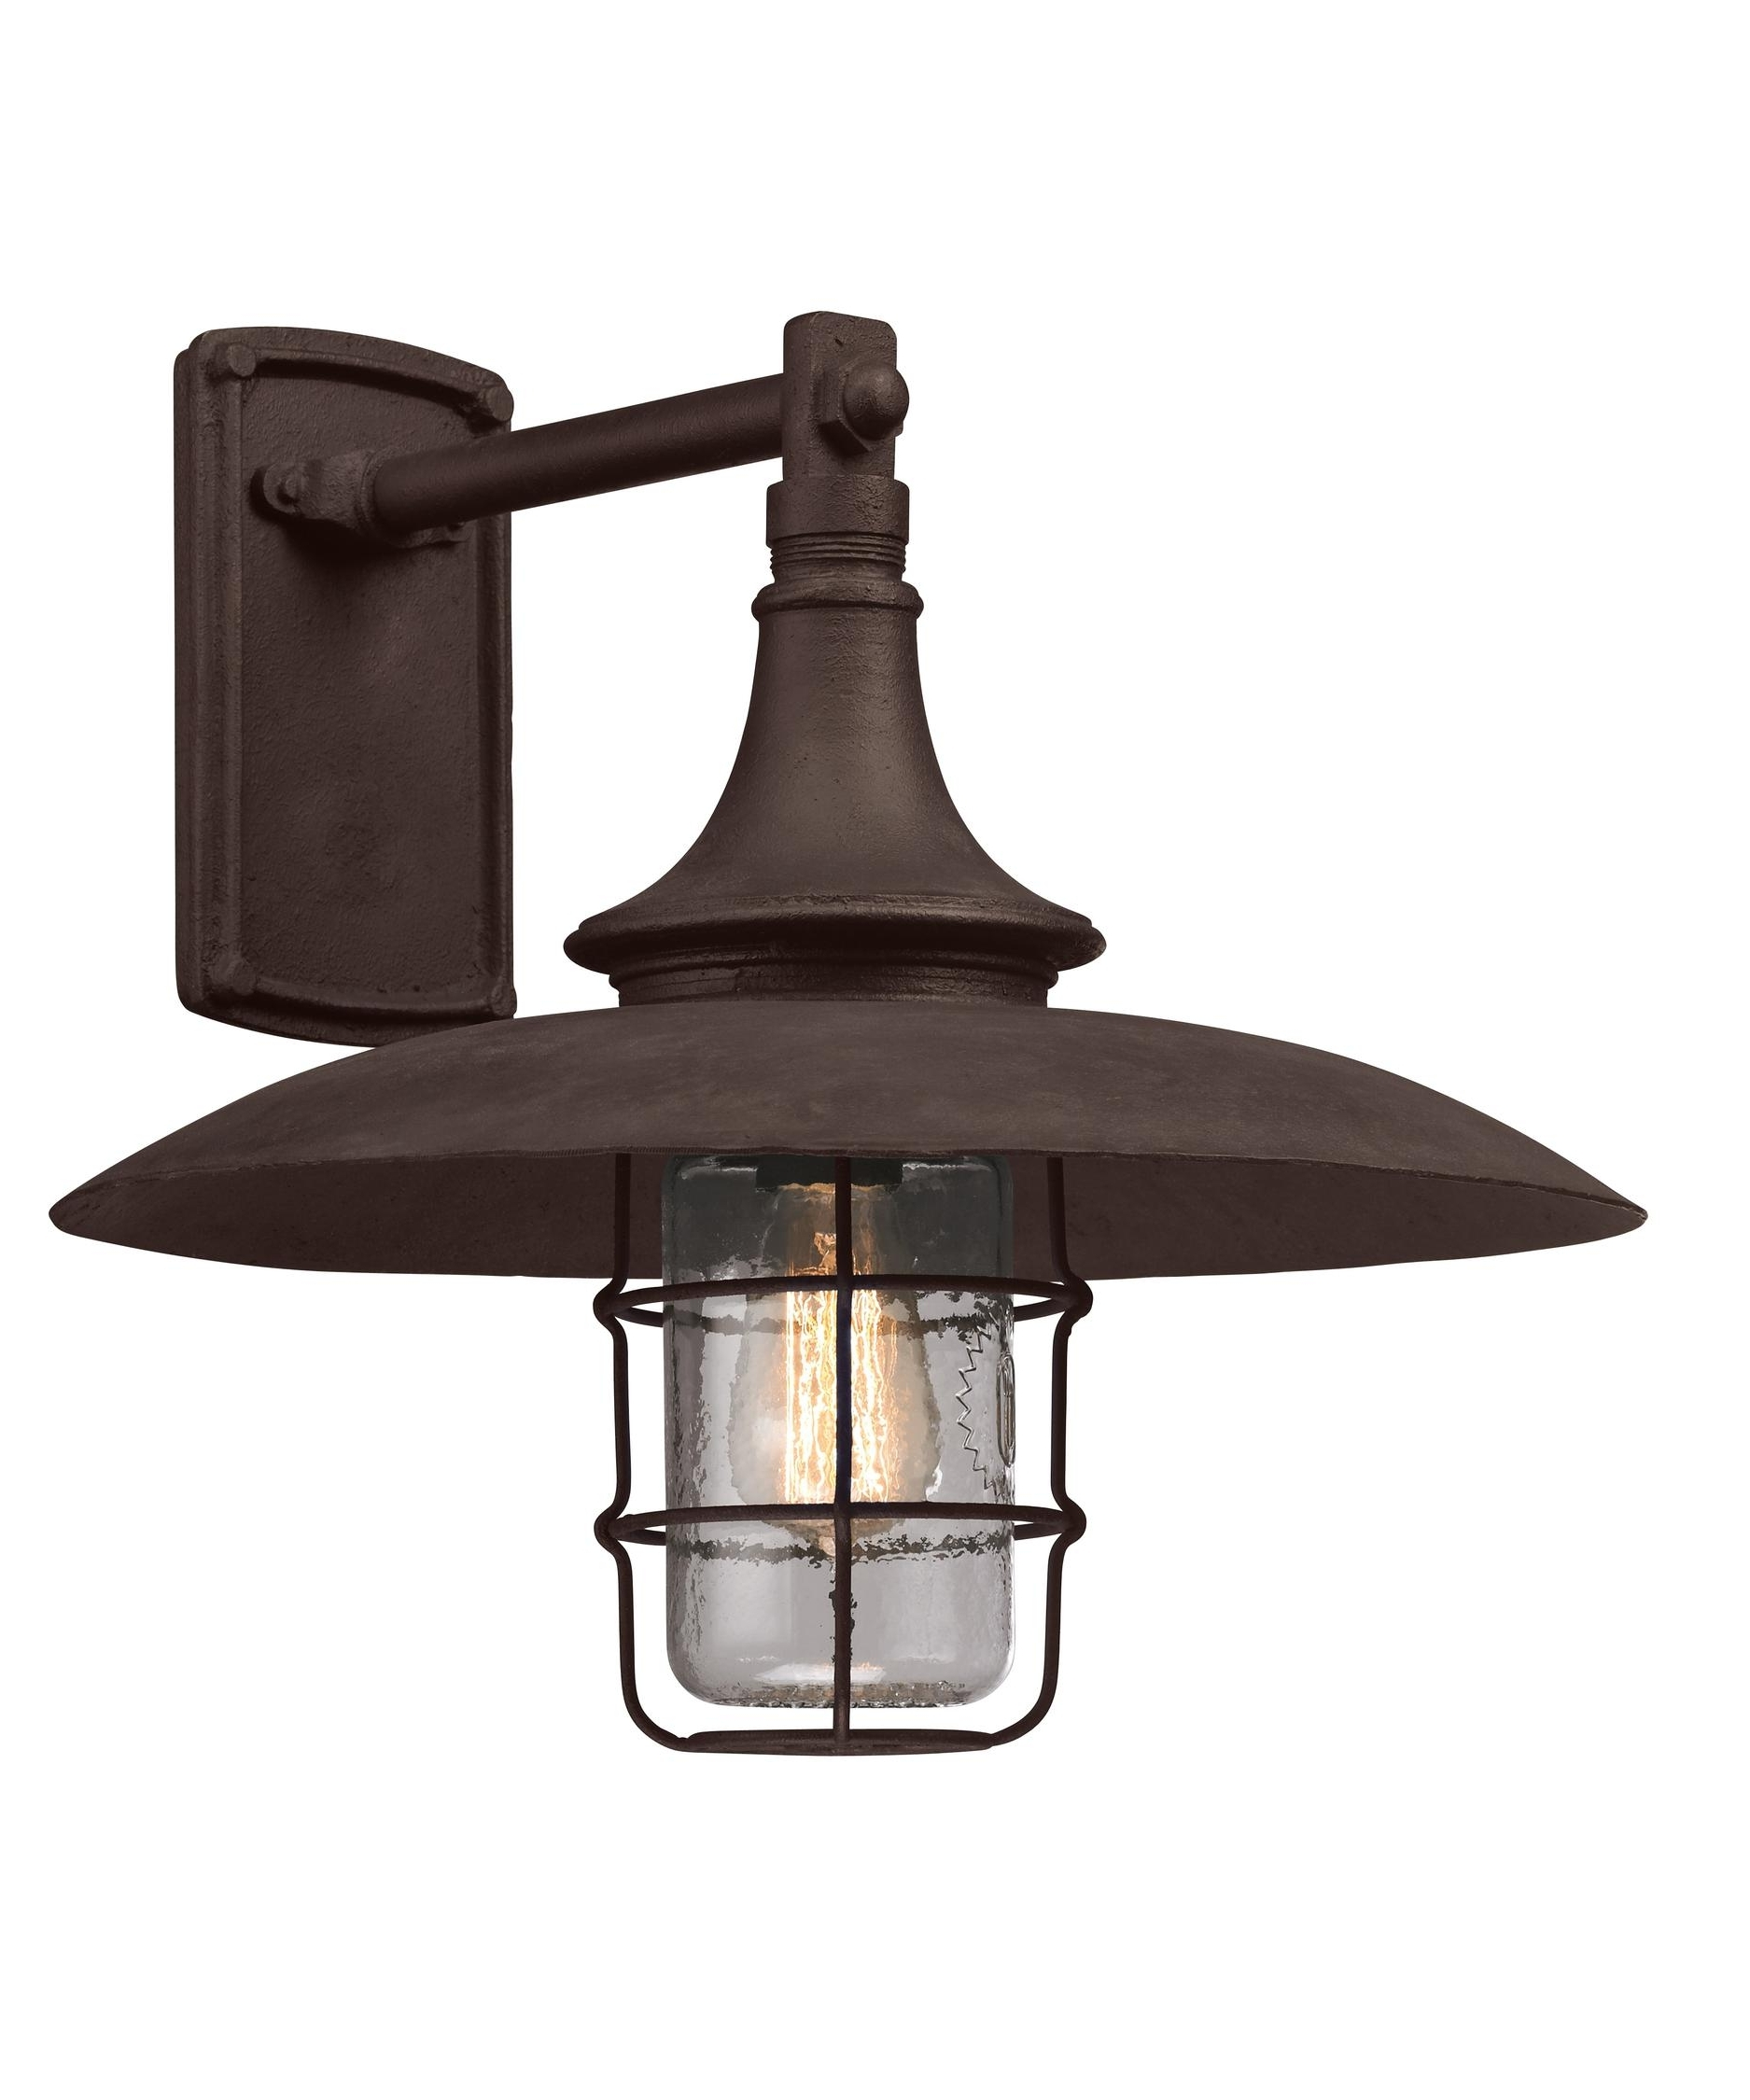 Popular Troy Lighting B3222 Allegany 16 Inch Wide 1 Light Outdoor Wall Light Within Antique Outdoor Wall Lighting (View 20 of 20)